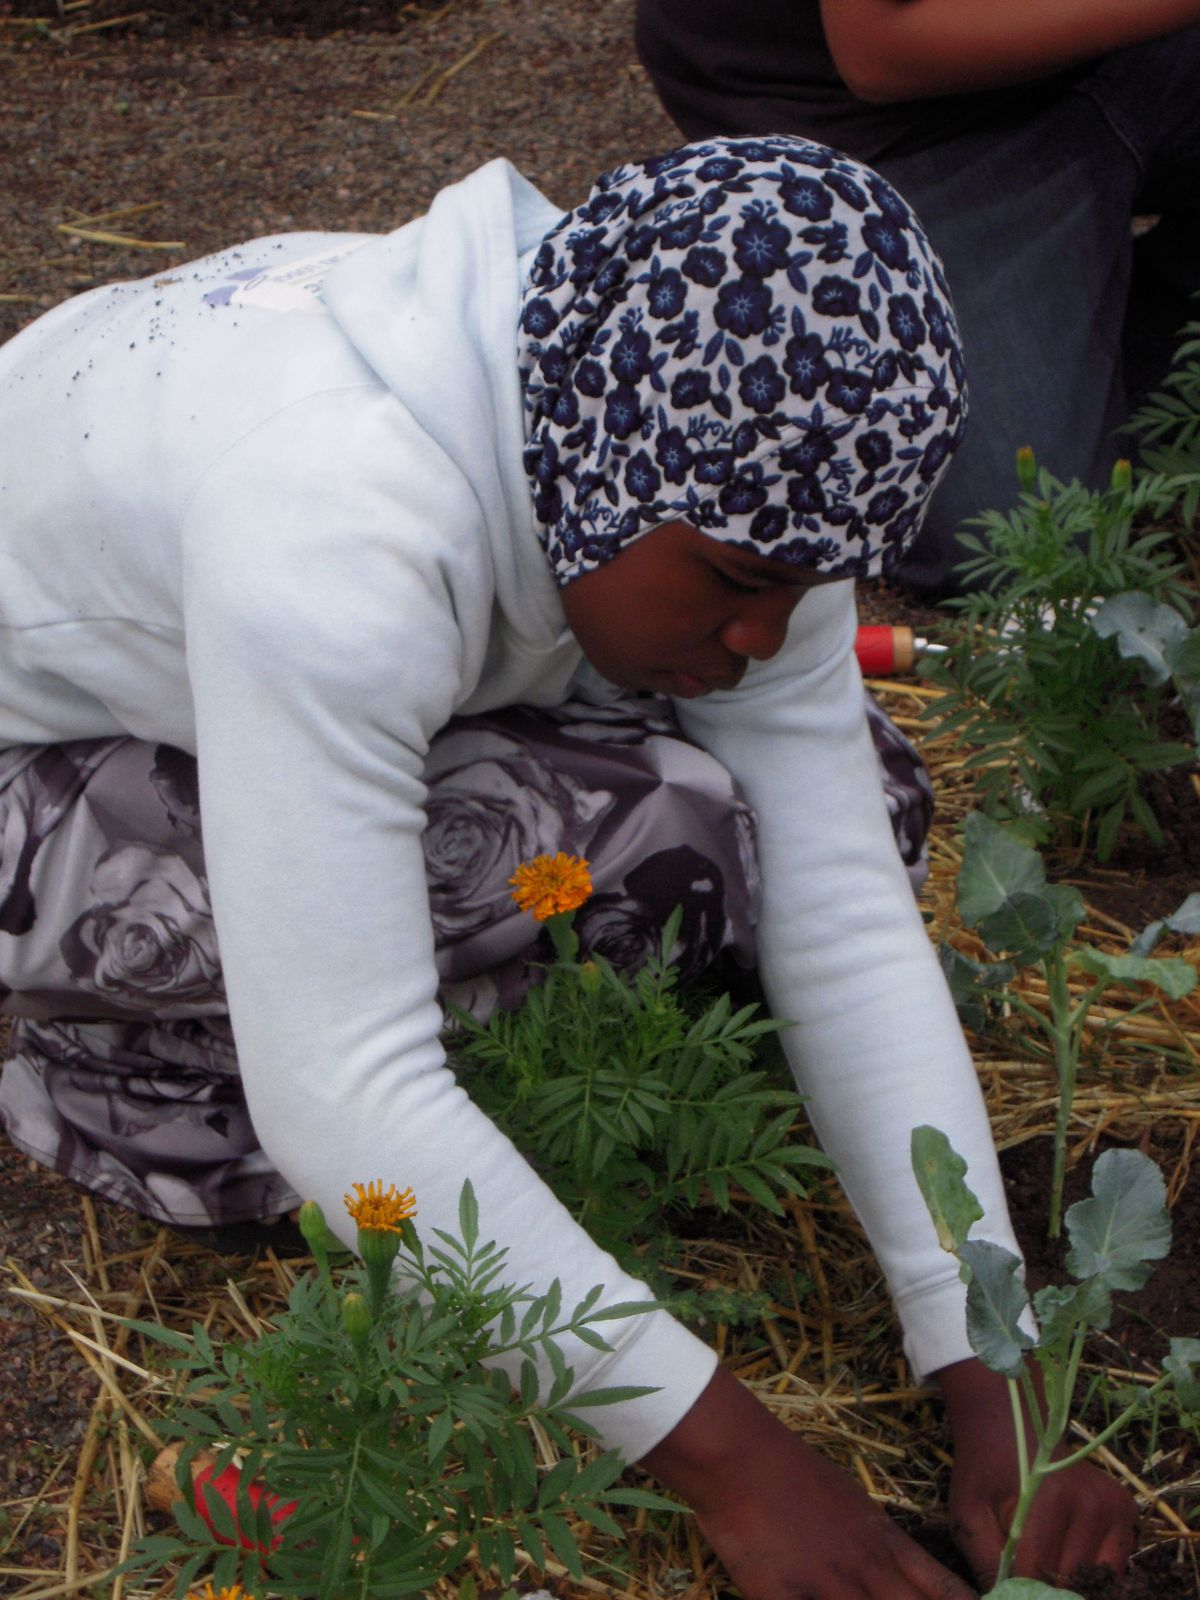 Fartun Sherif, 11, works in the broccoli patch at Fairview's school garden.